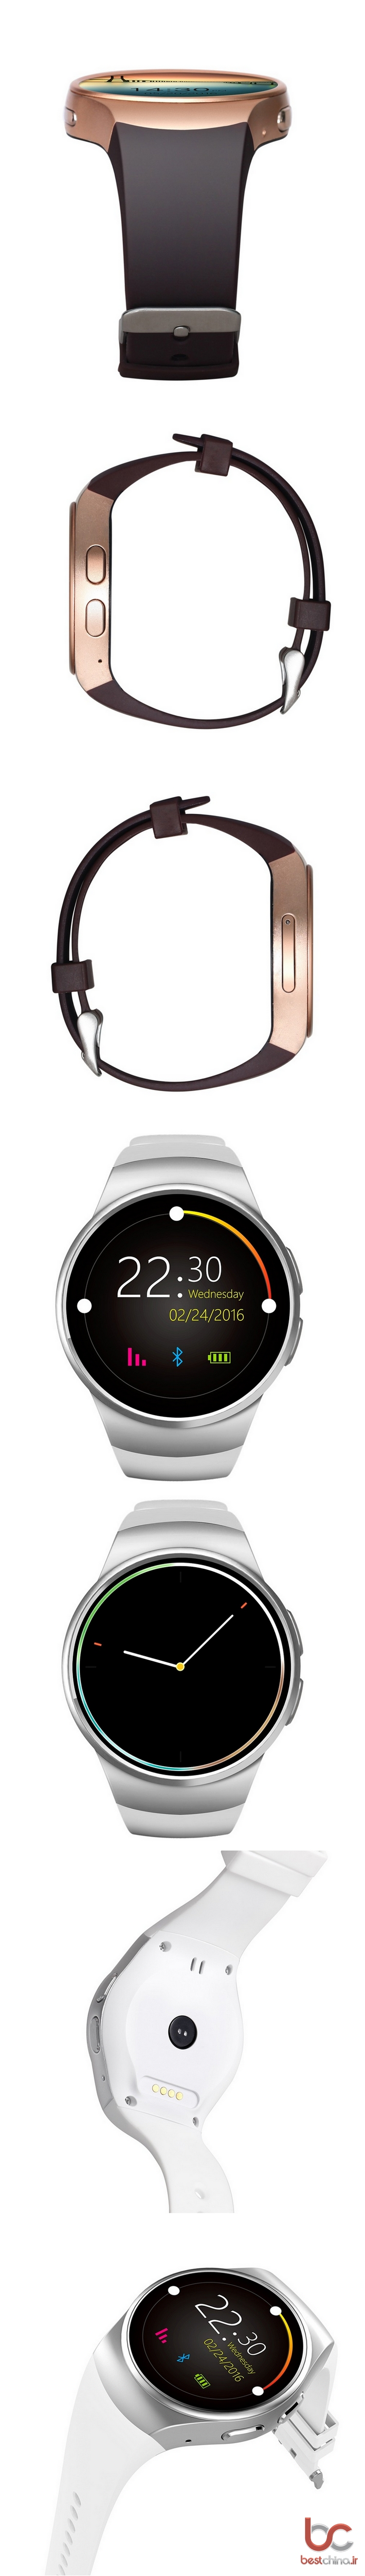 Kingwear KW18 Smartwatch (2)